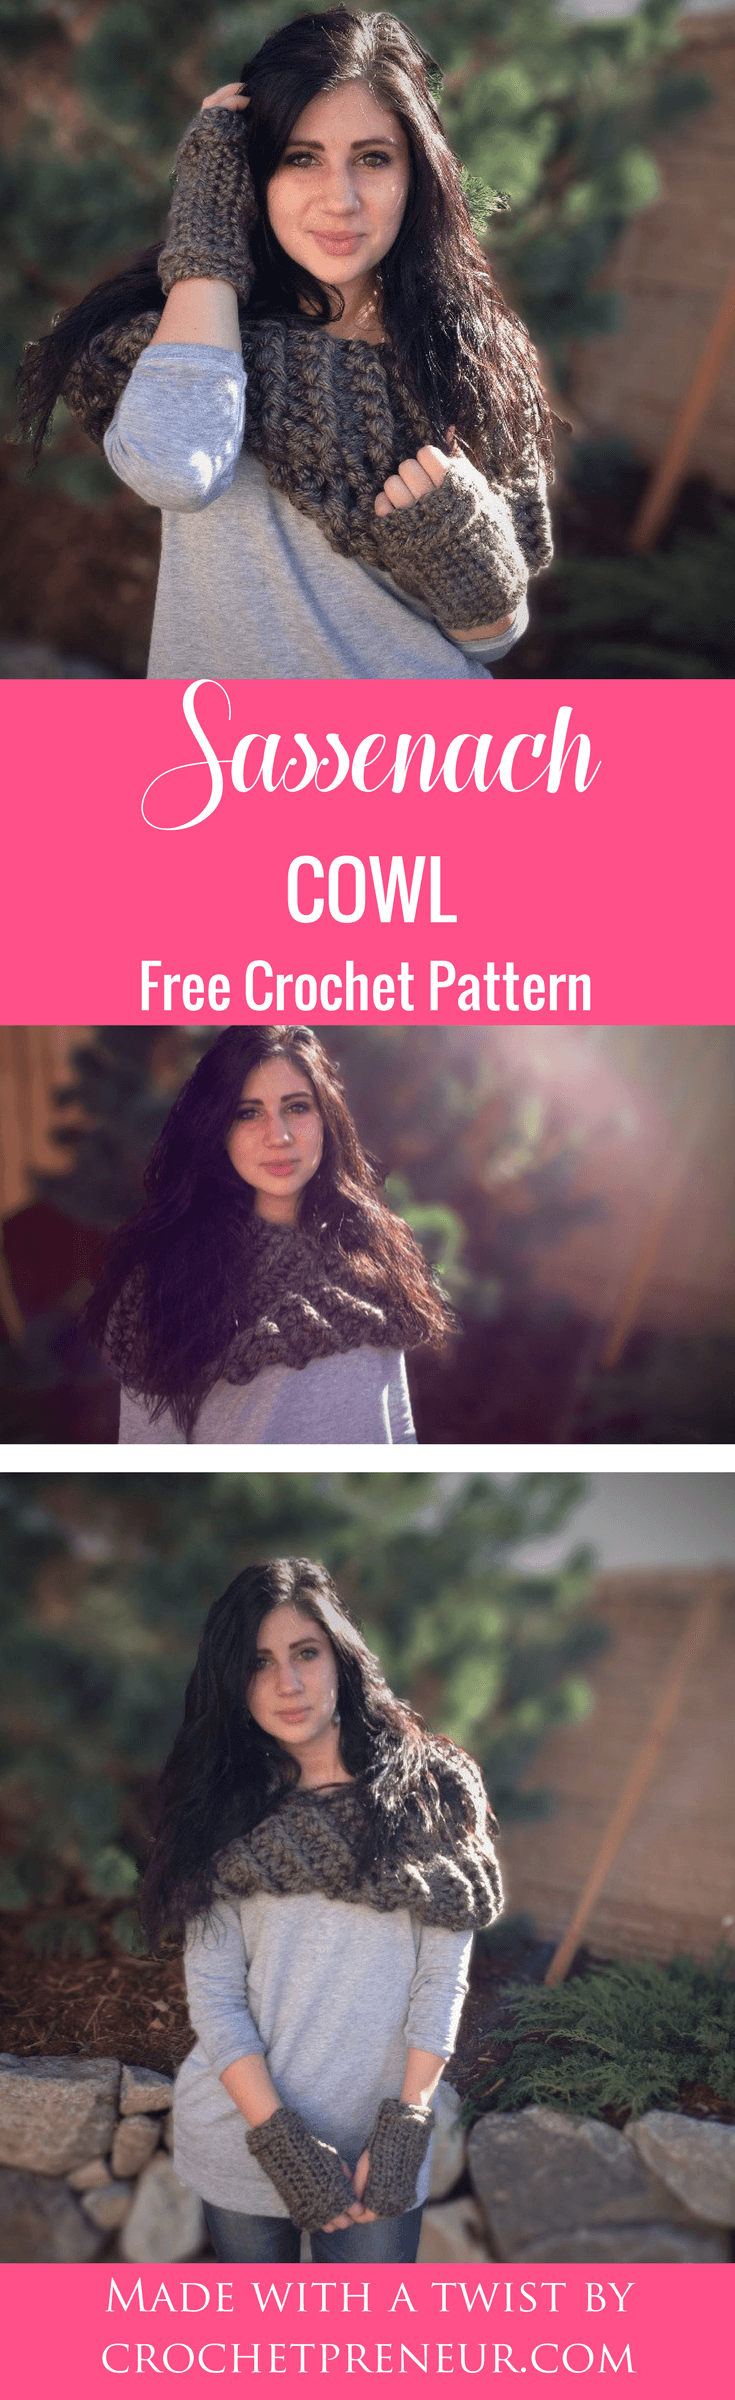 This free pattern is so fast and easy, I can